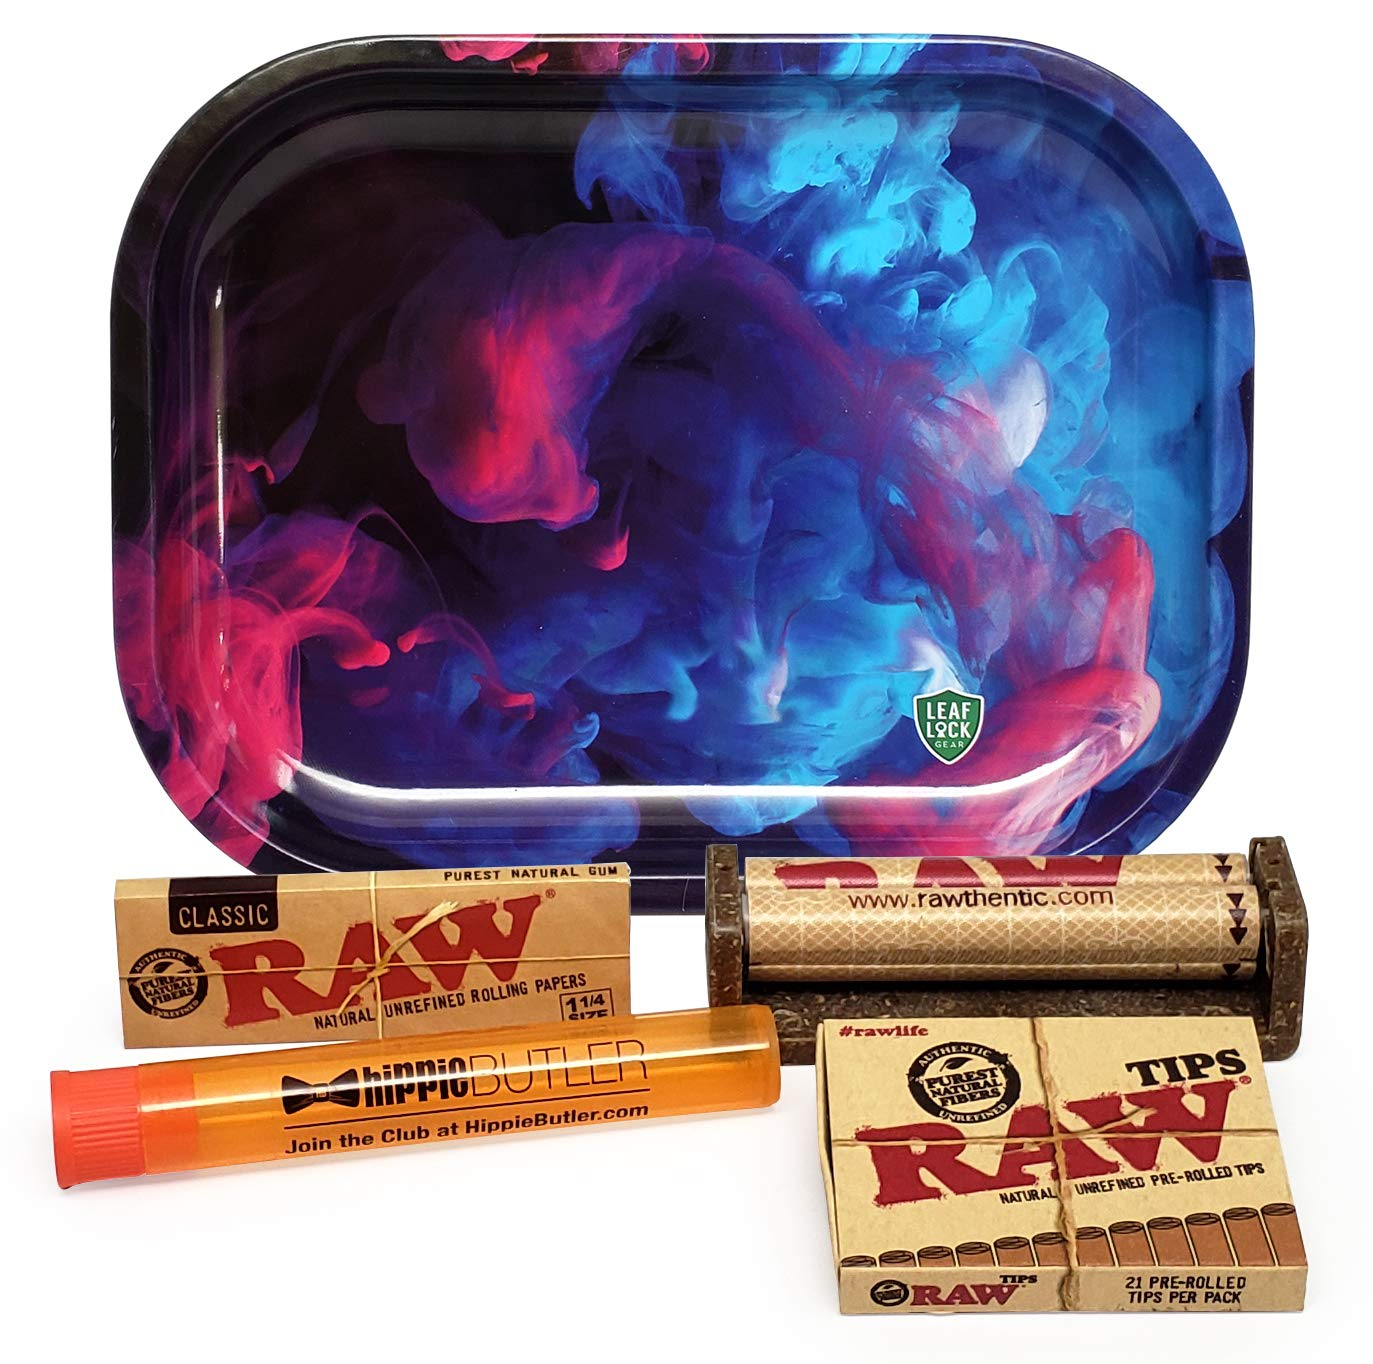 Bundle - 5 Items - RAW Classic 1 1/4 Rolling Papers, 79mm Roller, Pre-Rolled Tips with Leaf Lock Gear Mini Rolling Tray (Color Swirl) and Hippie Butler Kewl Tube by Leaf Lock Gear